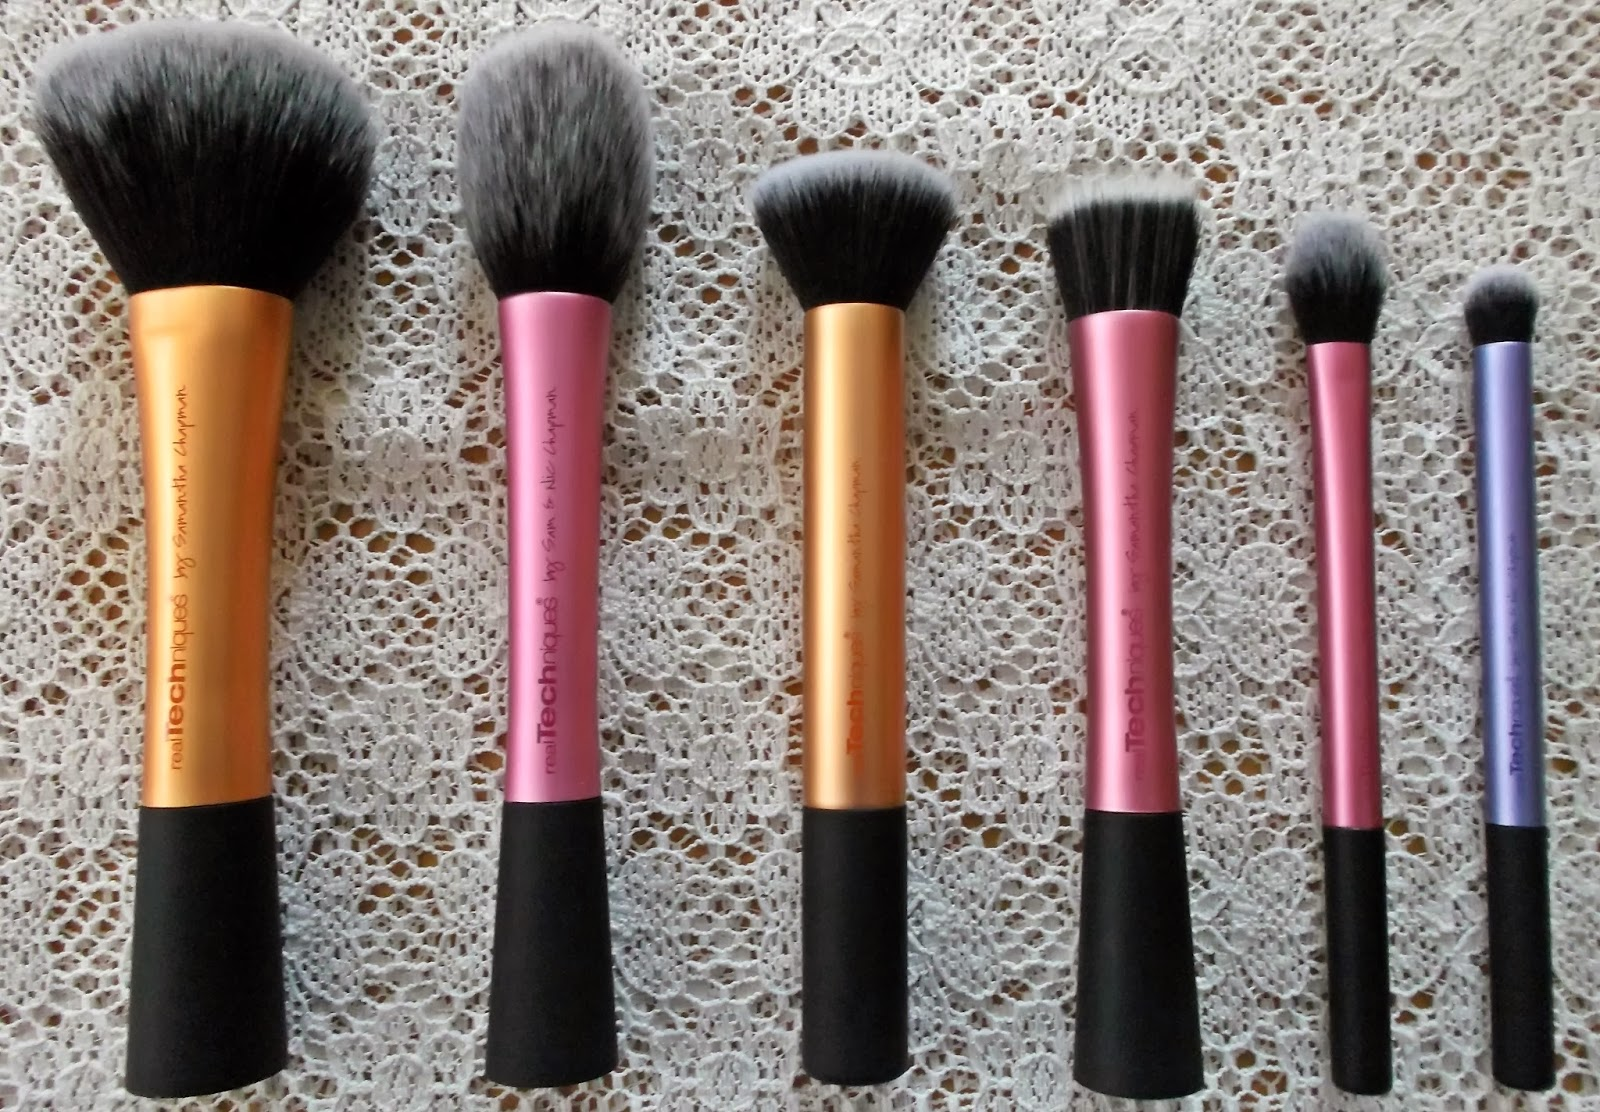 Pointed Powder Brush by e.l.f. #5